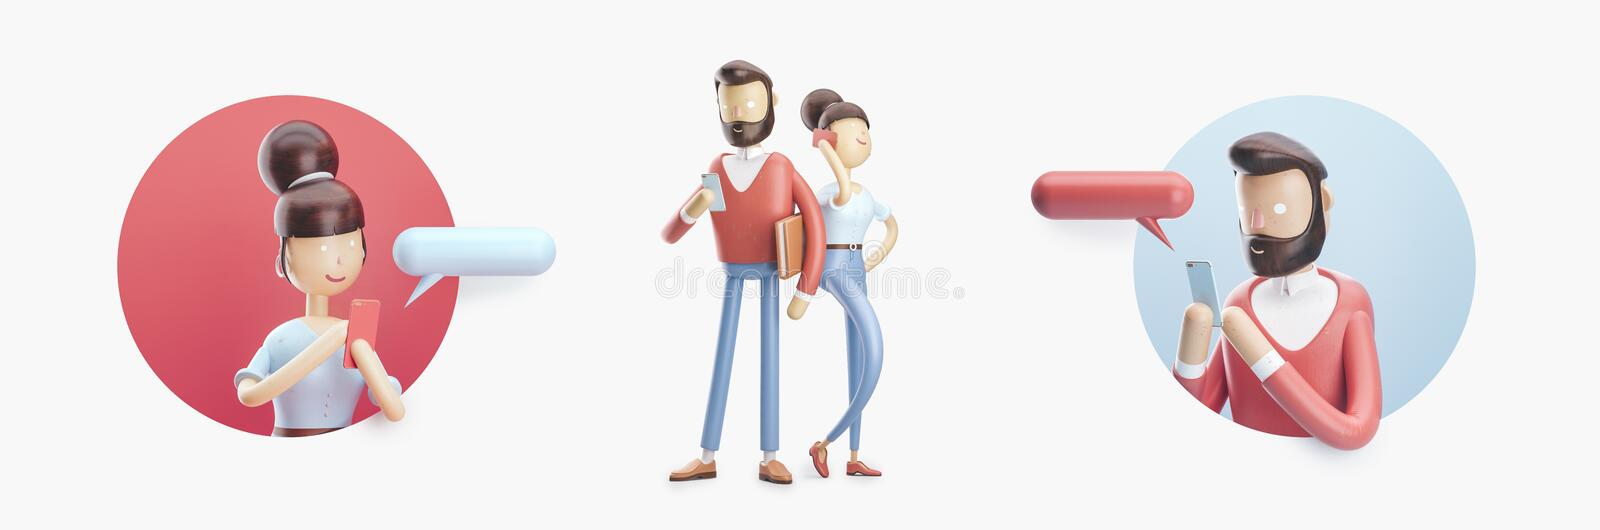 Cartoon character is sending a message from his phone. Set of 3d illustration stock illustration